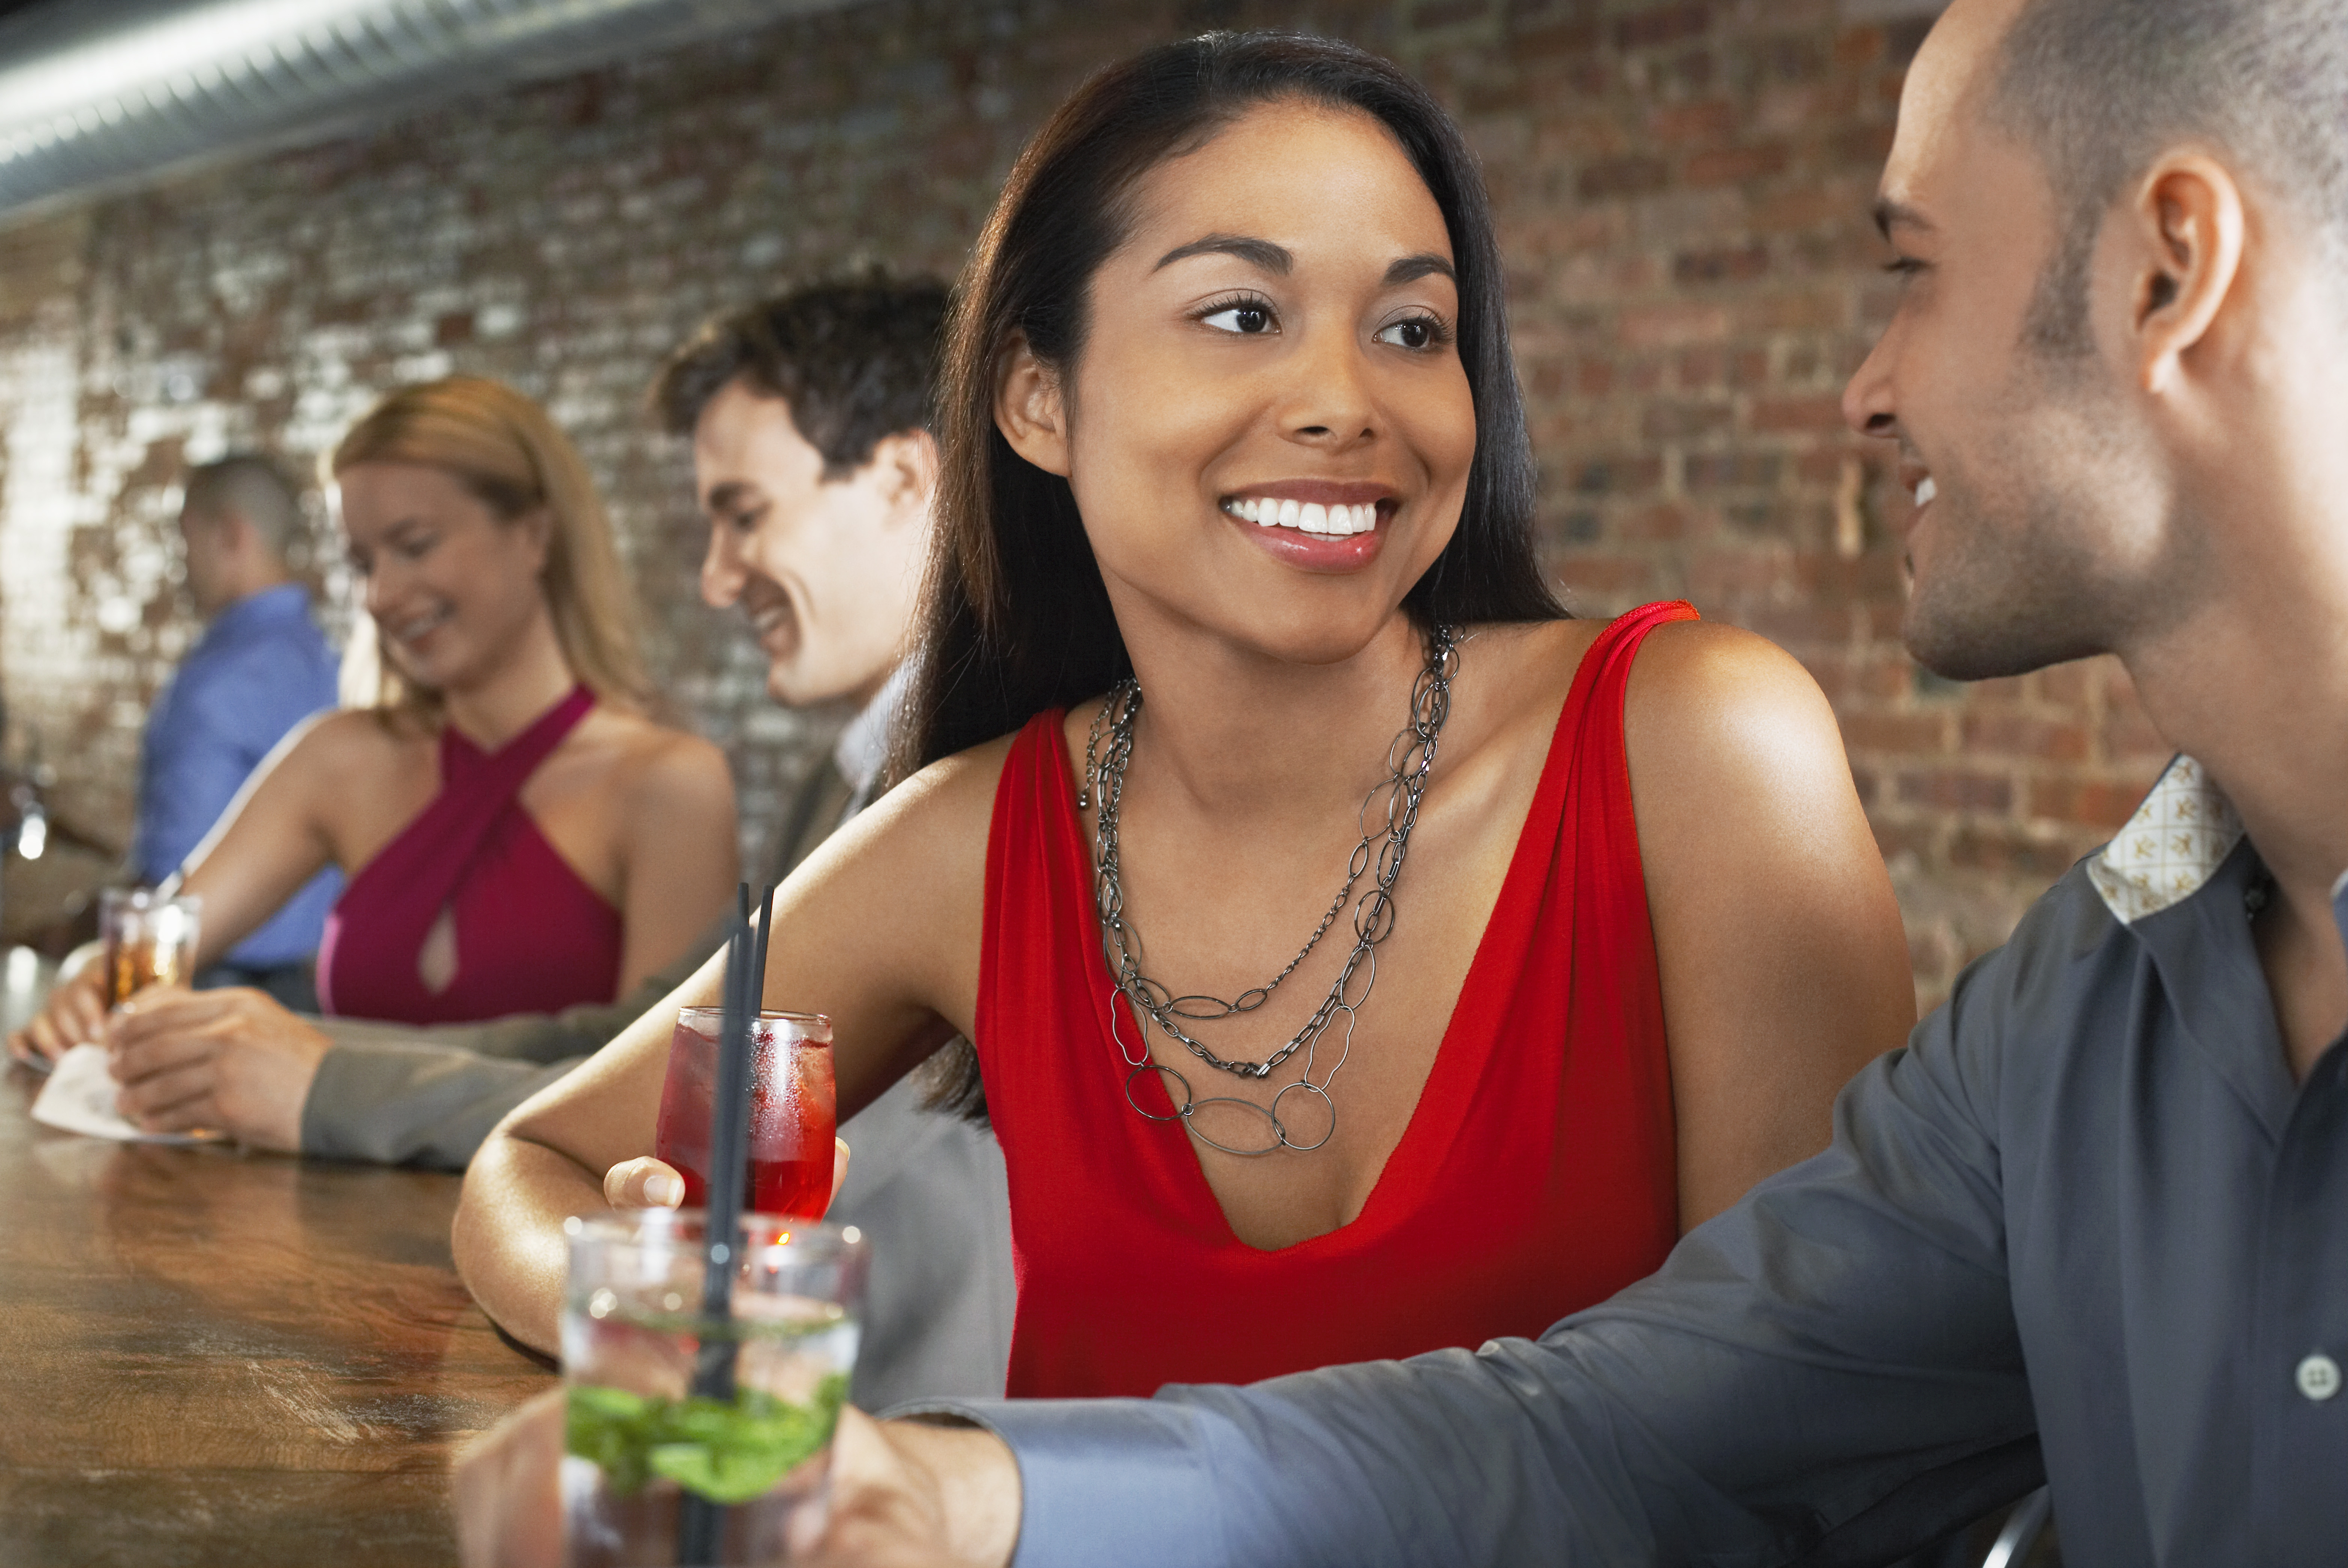 New haven speed dating program going virtual saturday, promising face